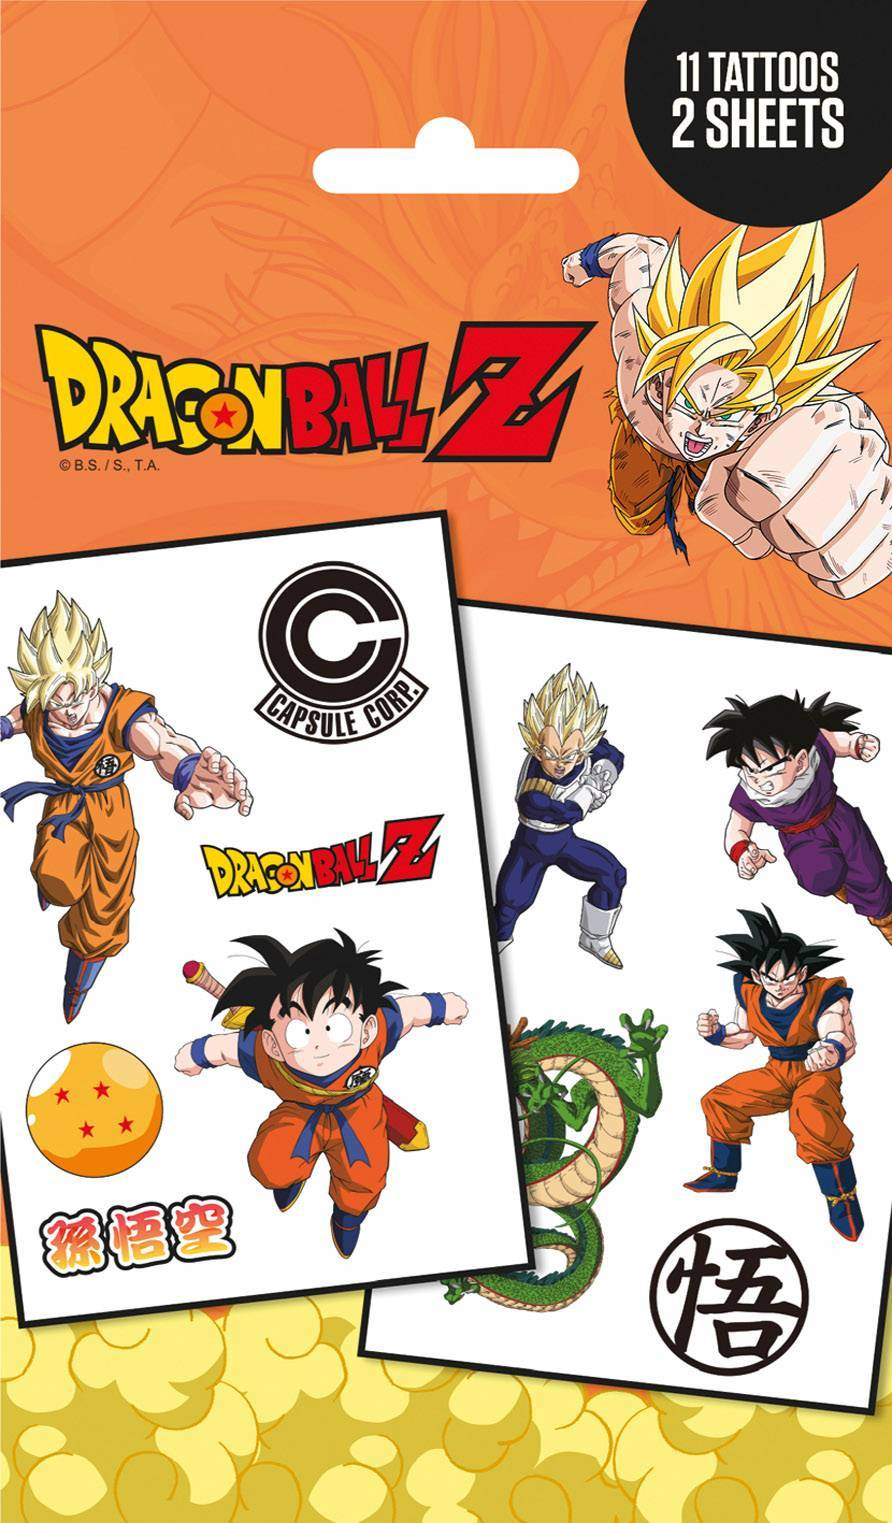 Dragon Ball Z Mix Tattoo Pack Review